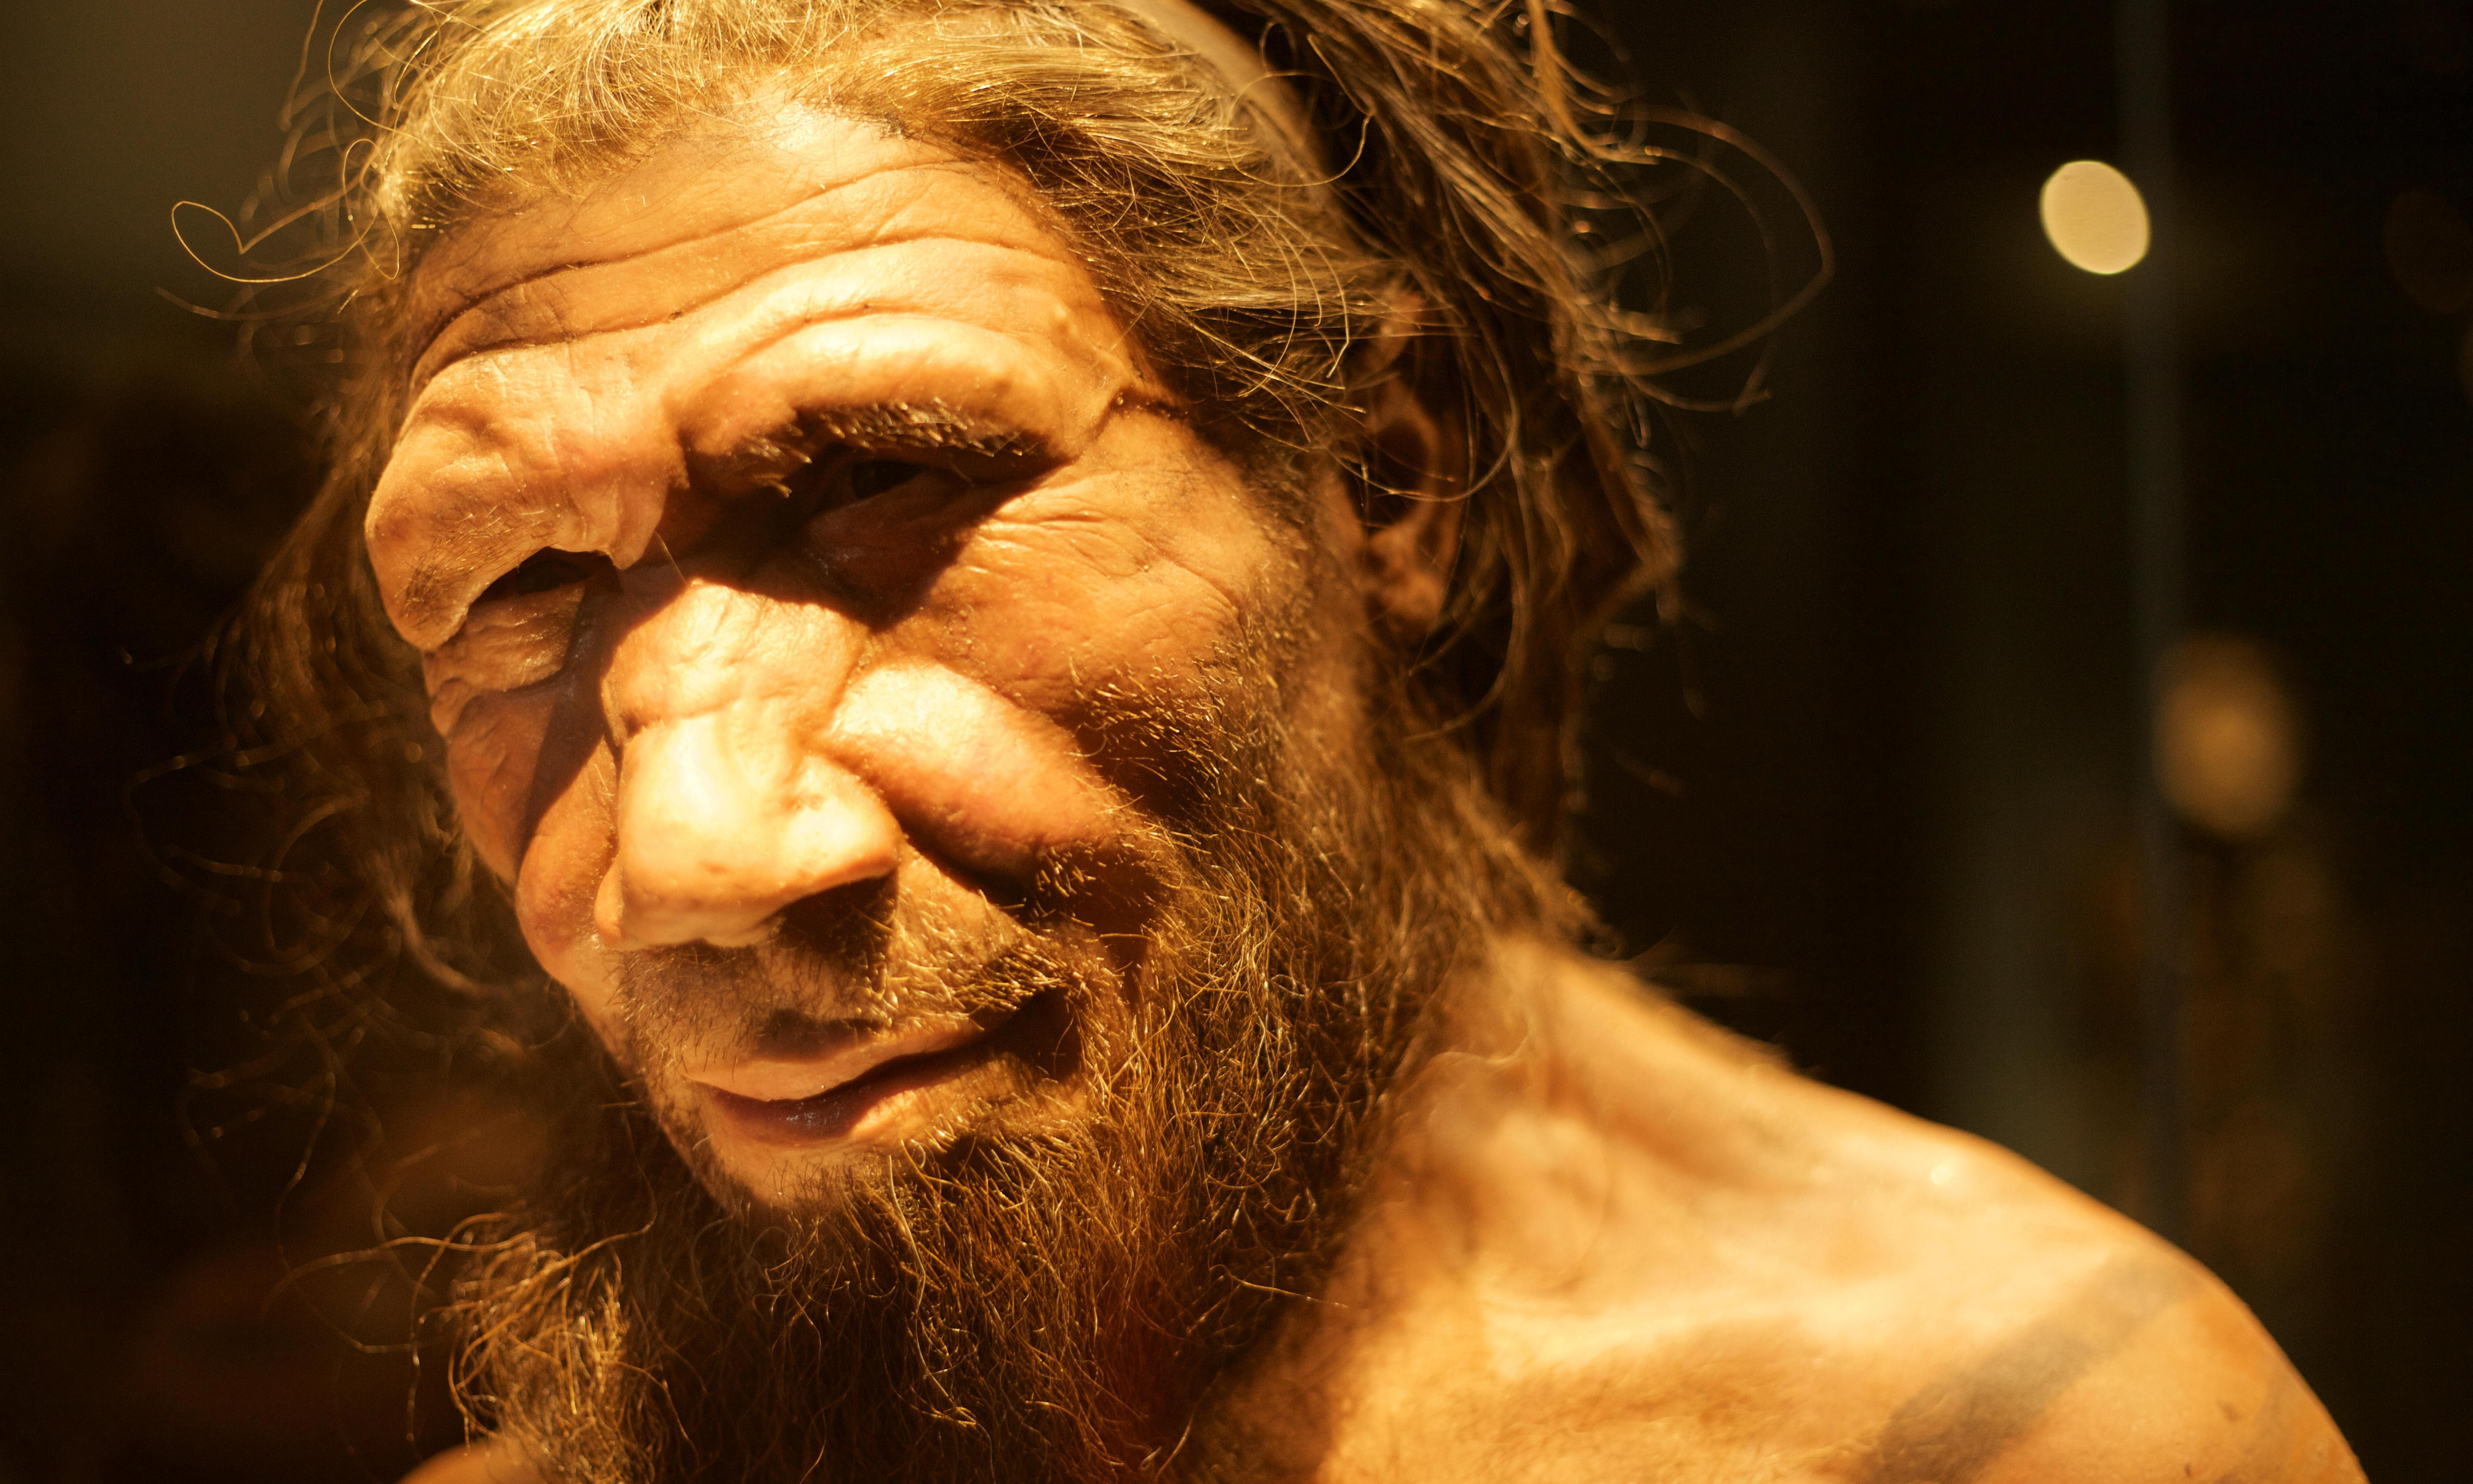 Cave find shows Neanderthals collected seafood, scientists say